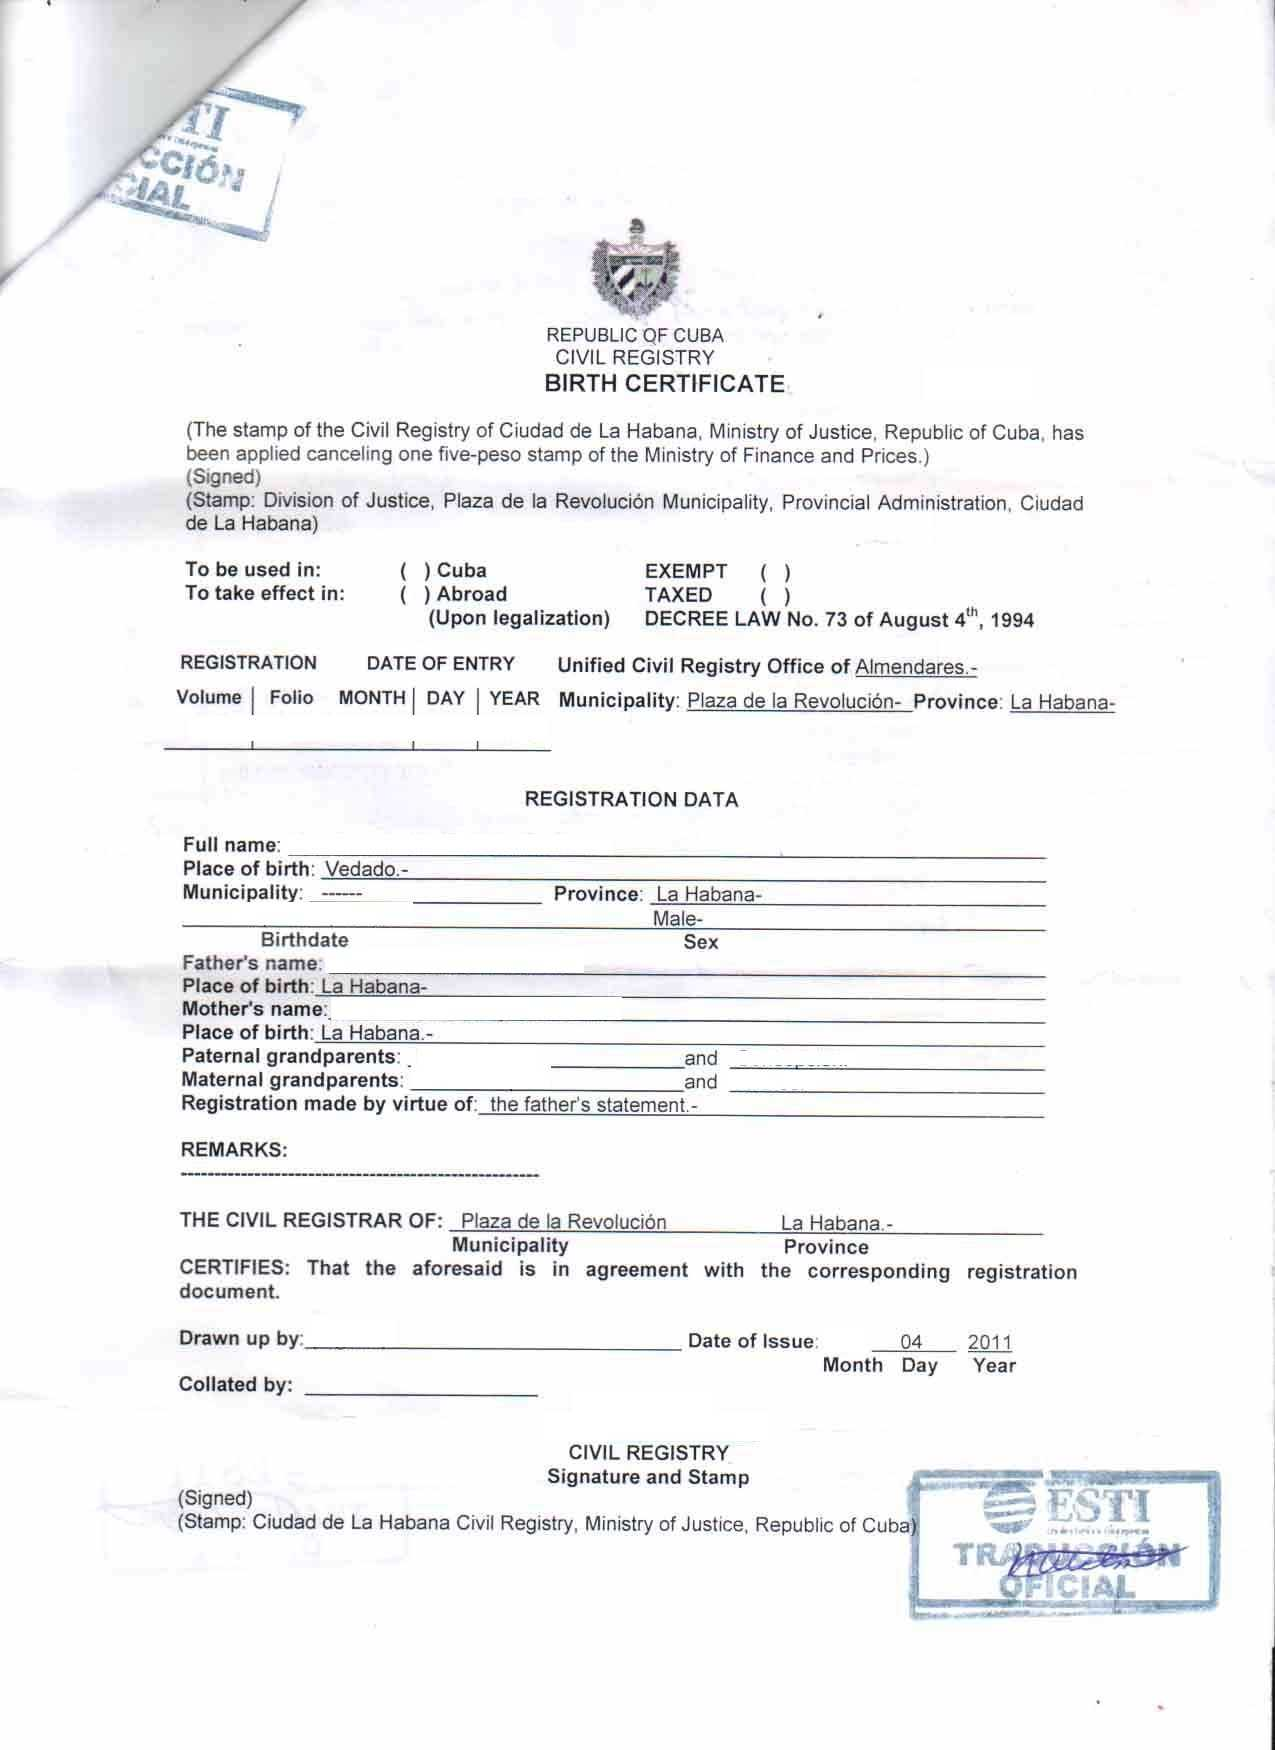 Death Certificate Template In Spanish Unique Birth Translate with regard to Marriage Certificate Translation From Spanish To English Template